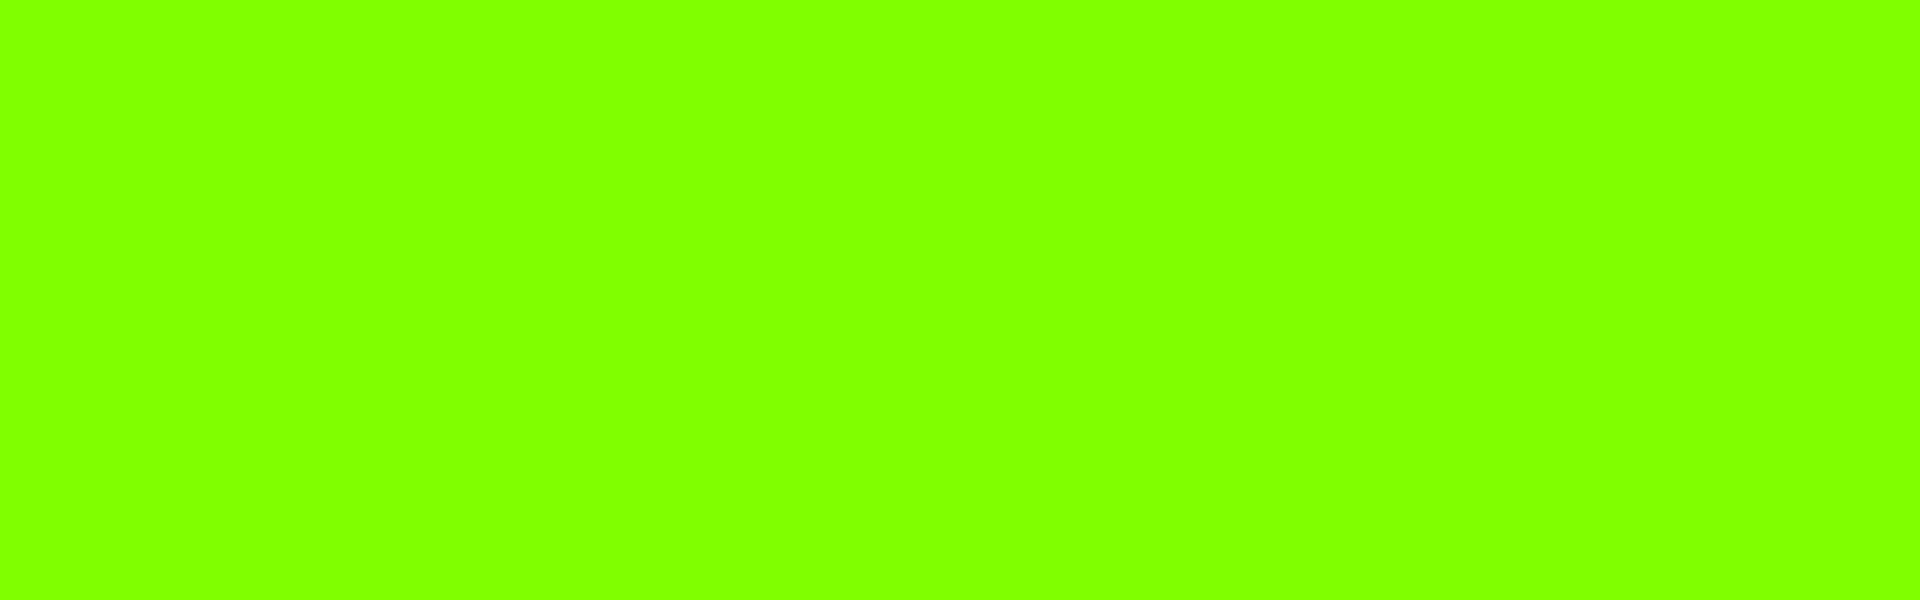 Grinch-Green-Background